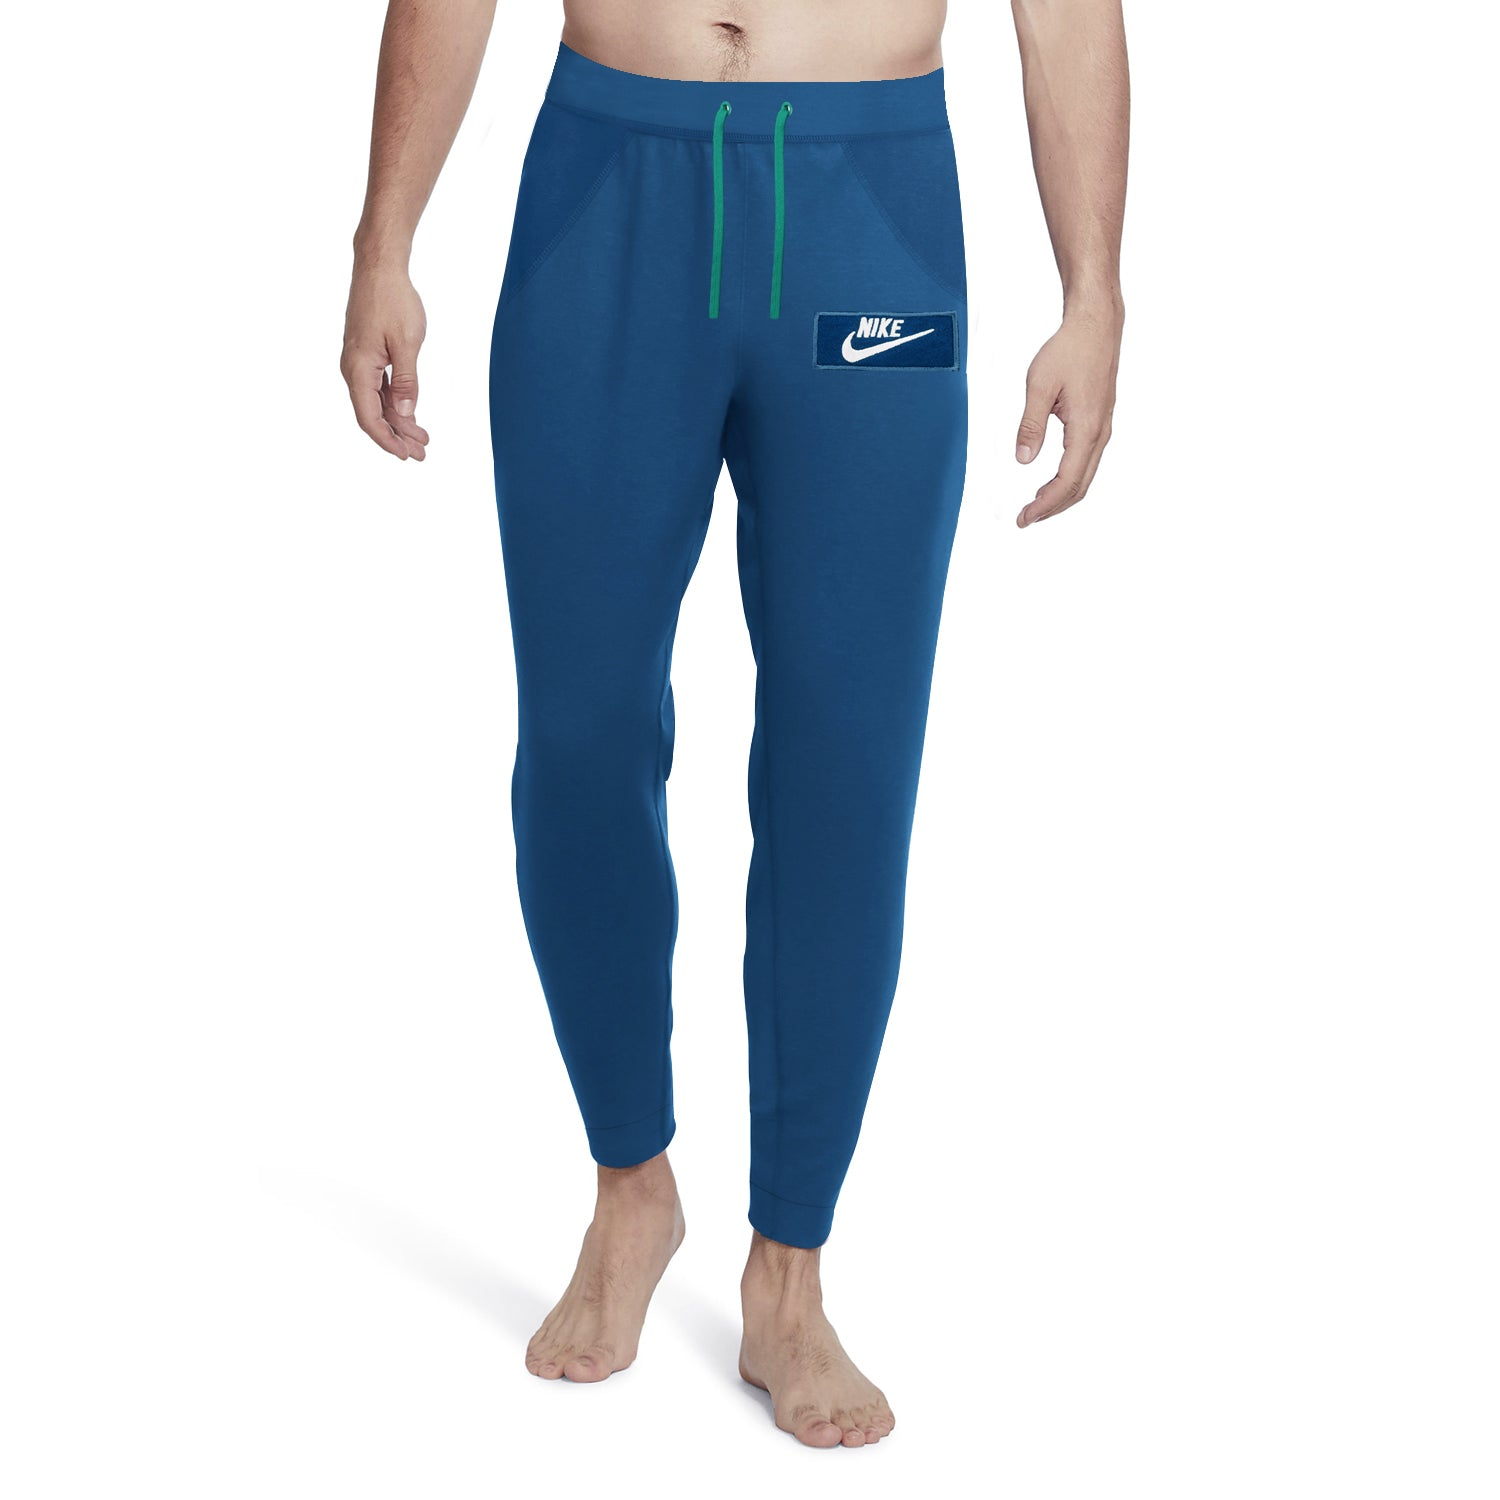 NK Fleece Slim Fit Pant Style Jogging Trouser For Men-Dark Blue with White Embroidery-BE12945